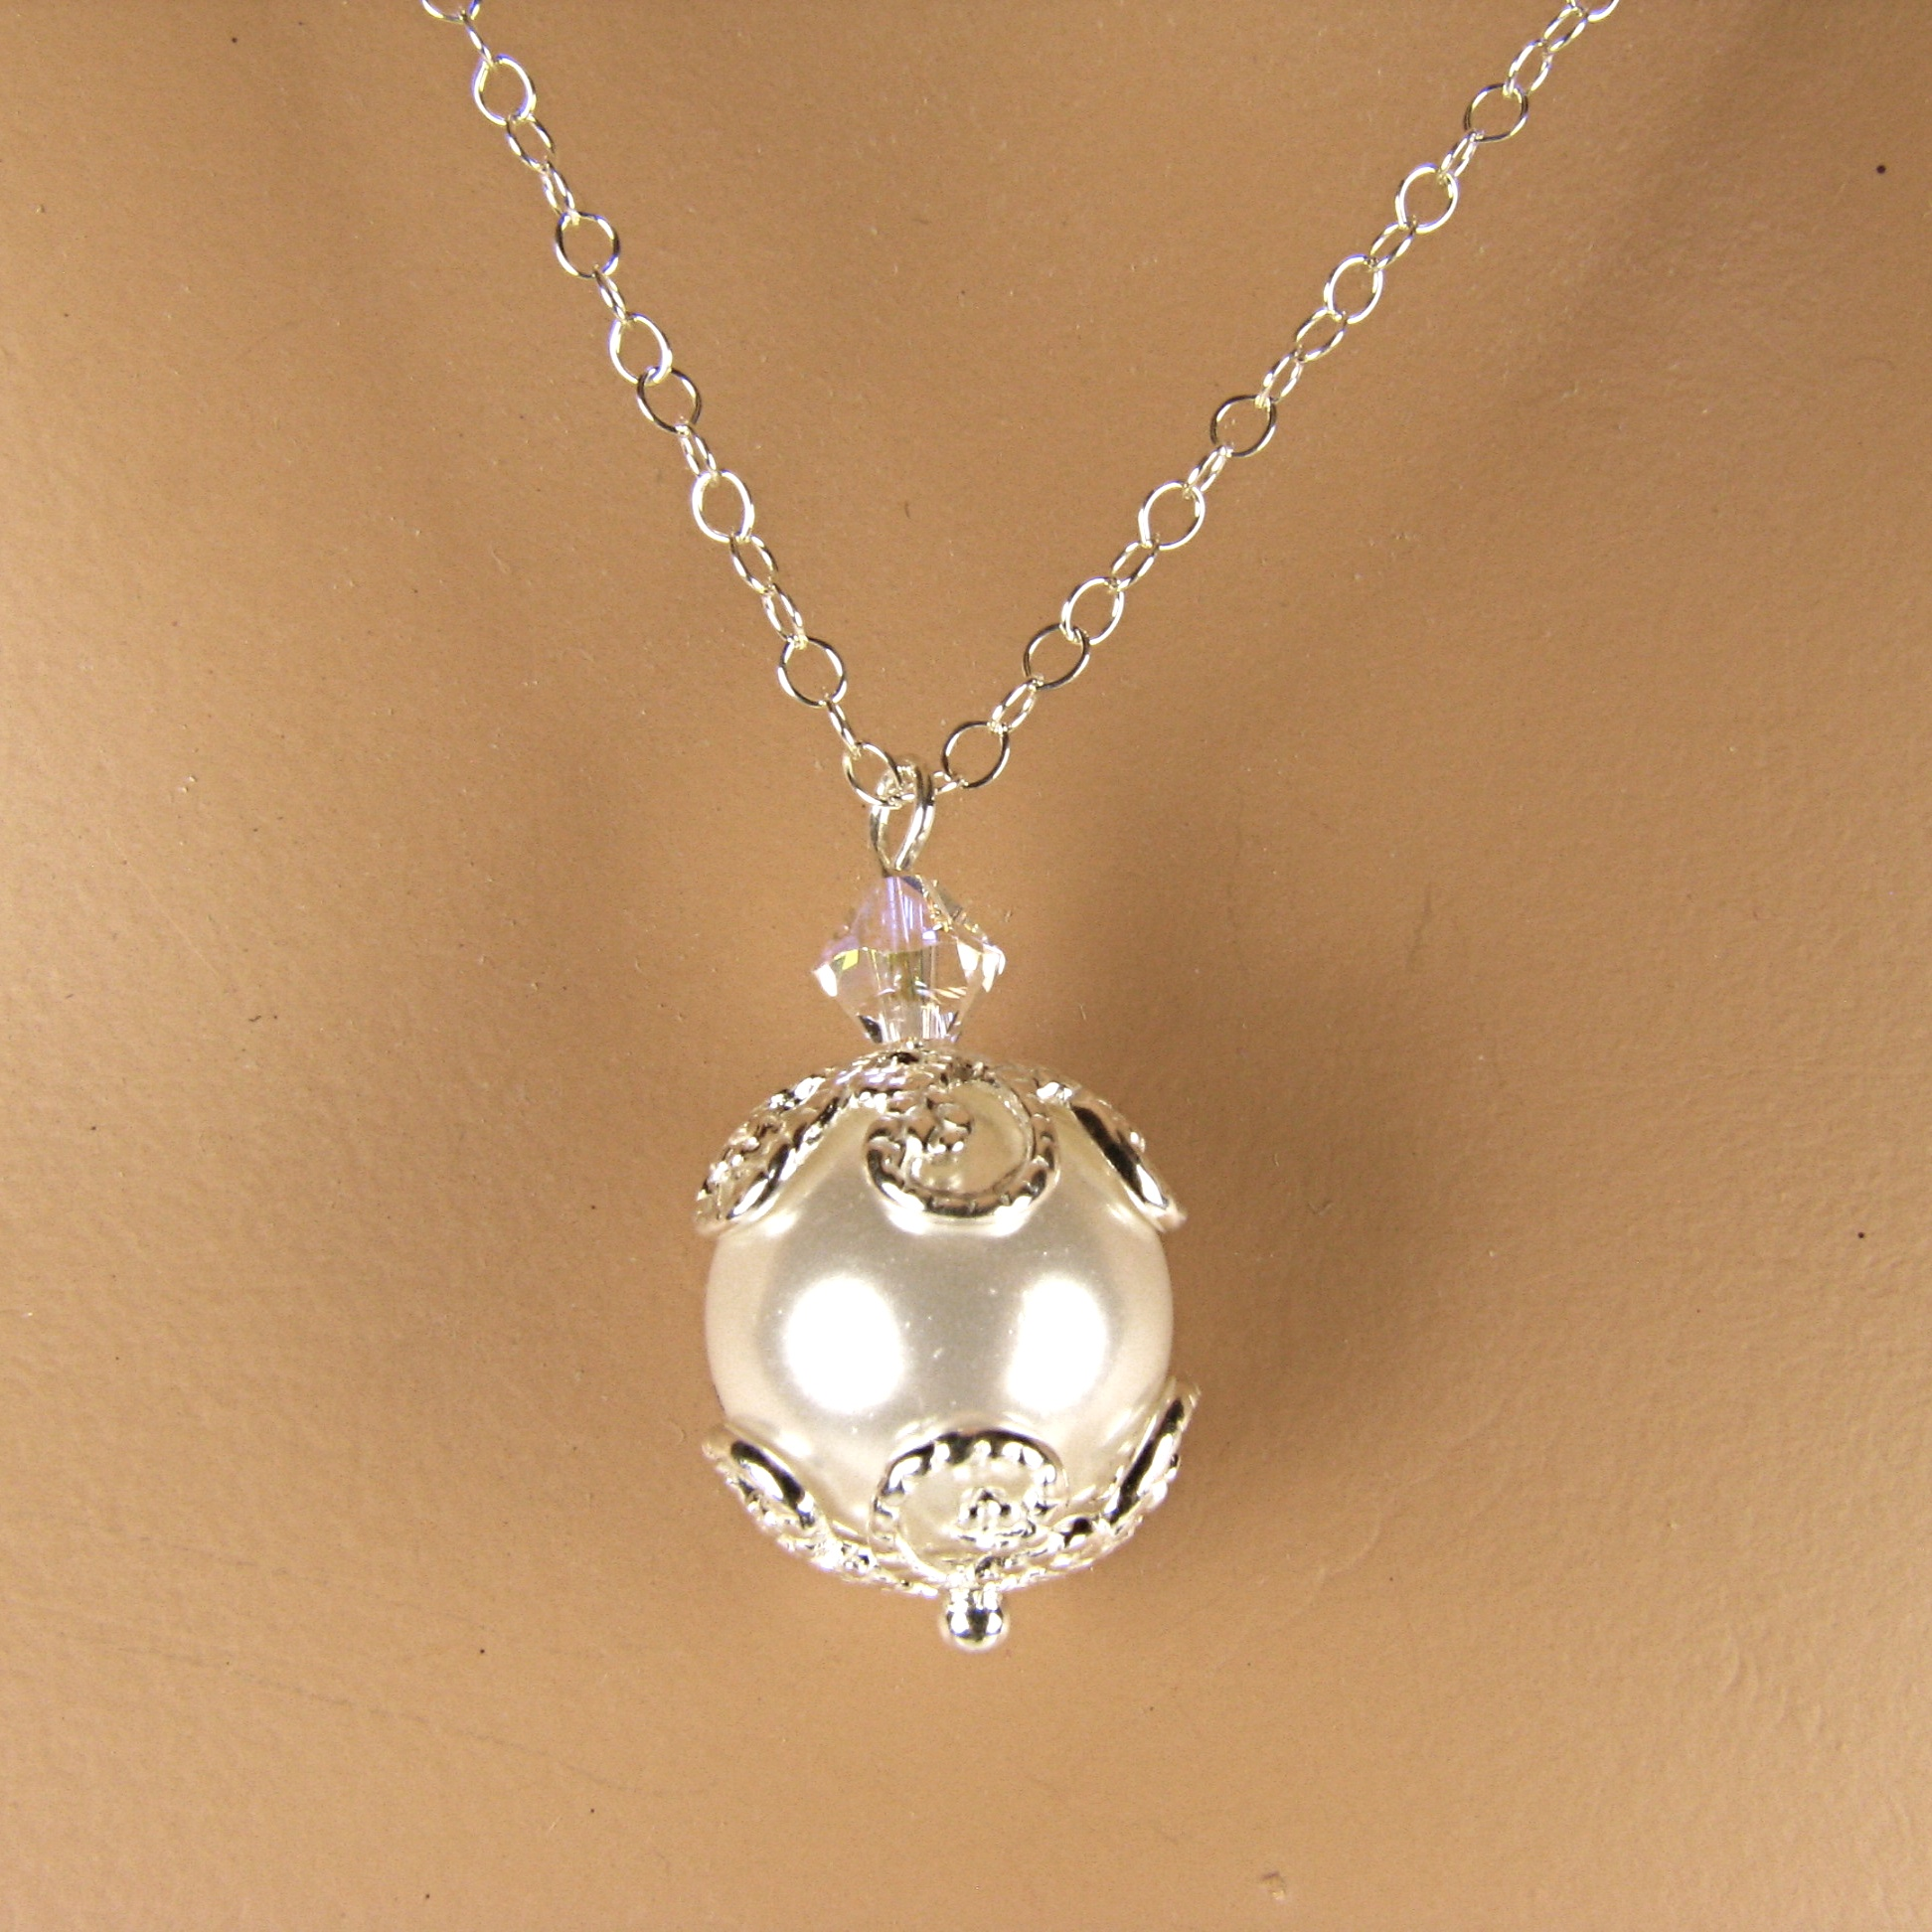 Pearl and Filigree Necklace